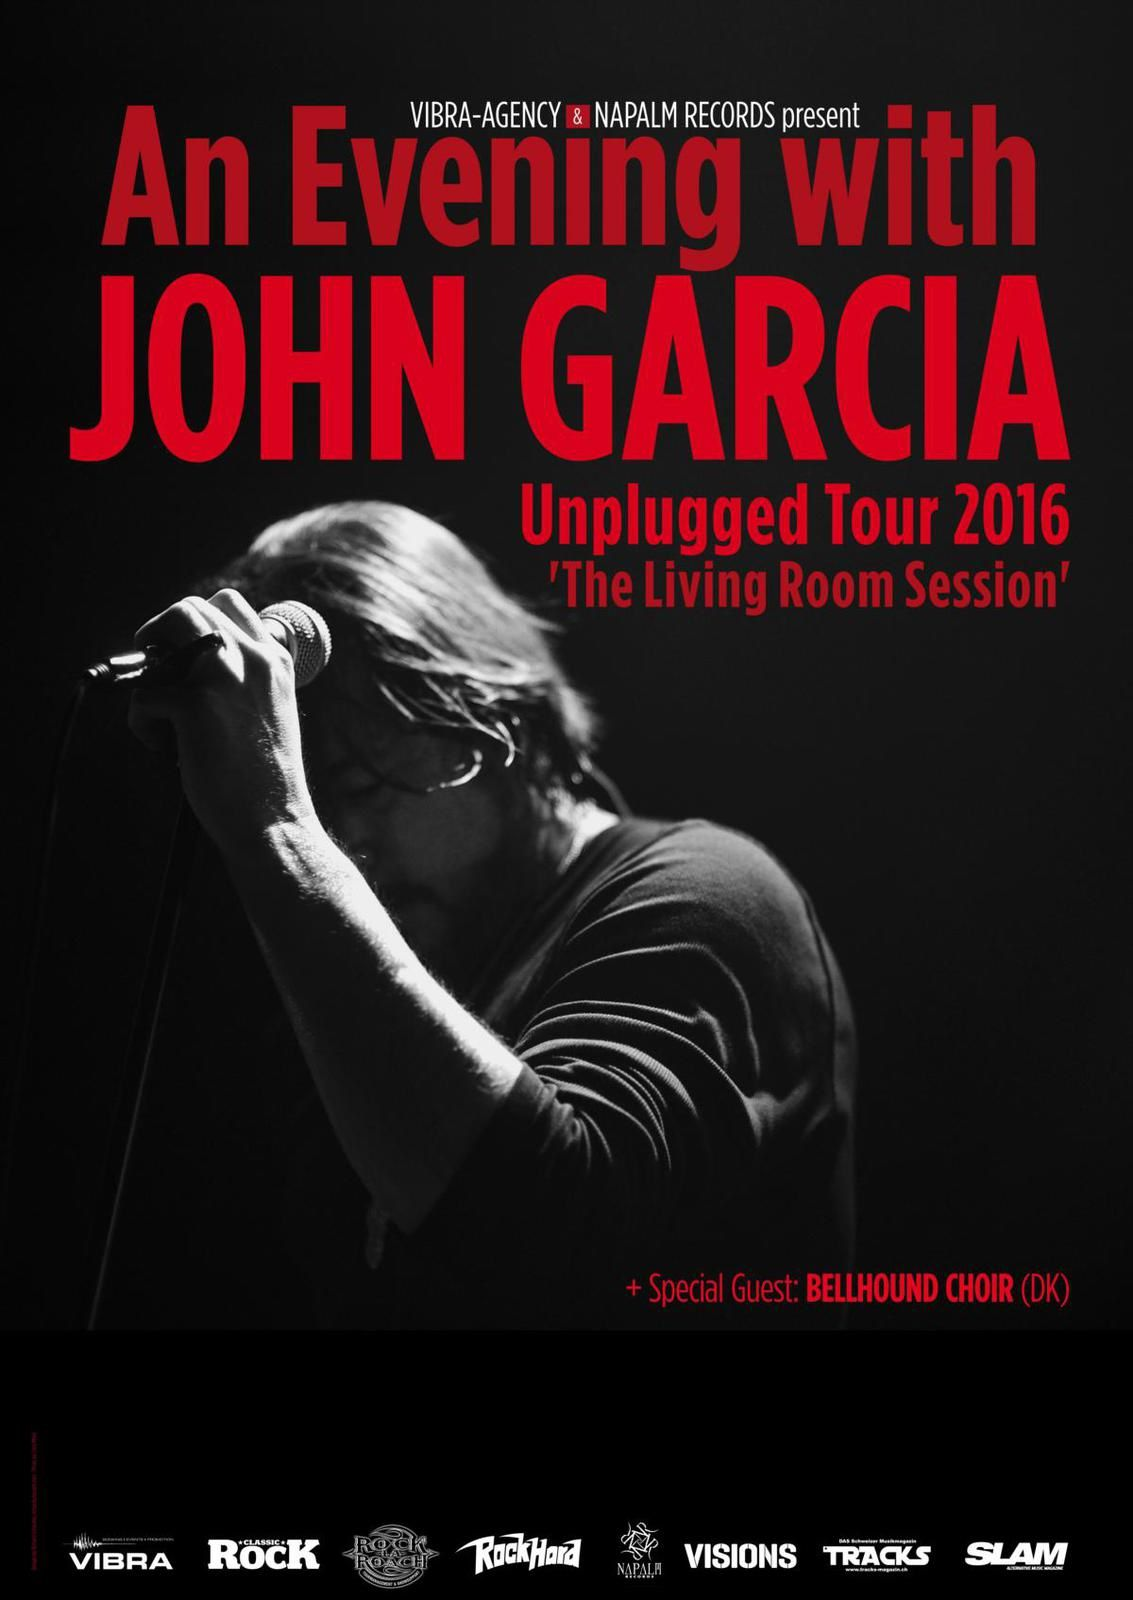 JOHN GARCIA acoustic tour dates